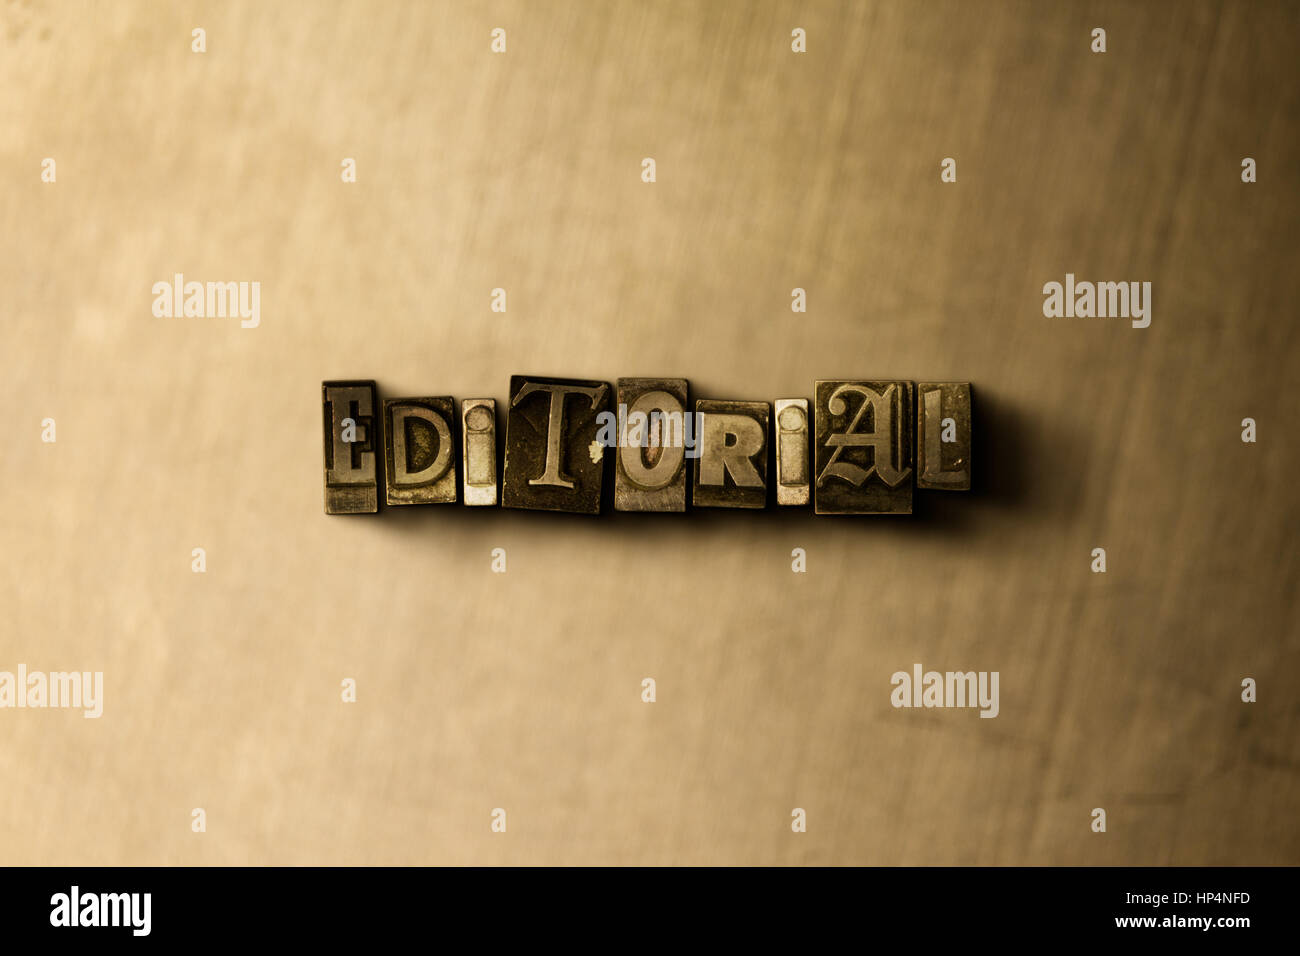 EDITORIAL - close-up of grungy vintage typeset word on metal backdrop. Royalty free stock illustration.  Can be - Stock Image